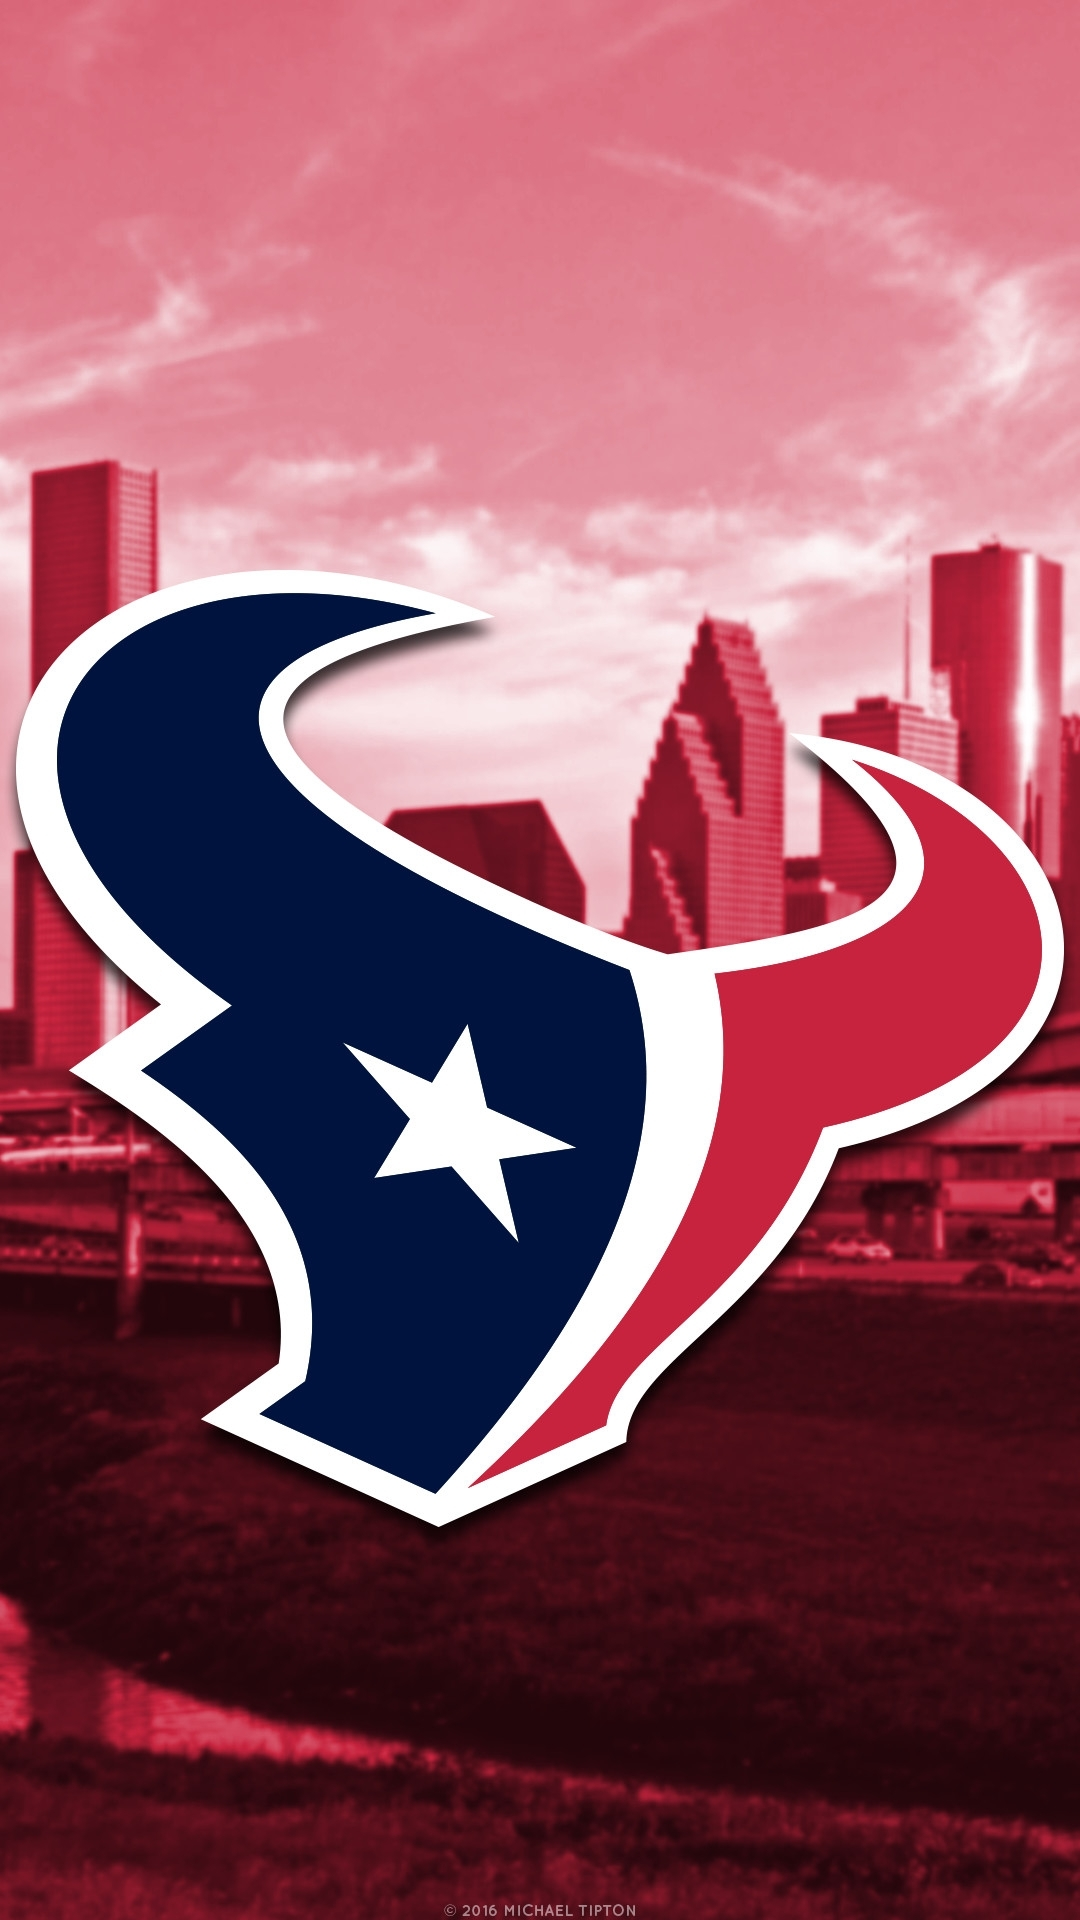 houston texans iphone wallpaper (66+ images)